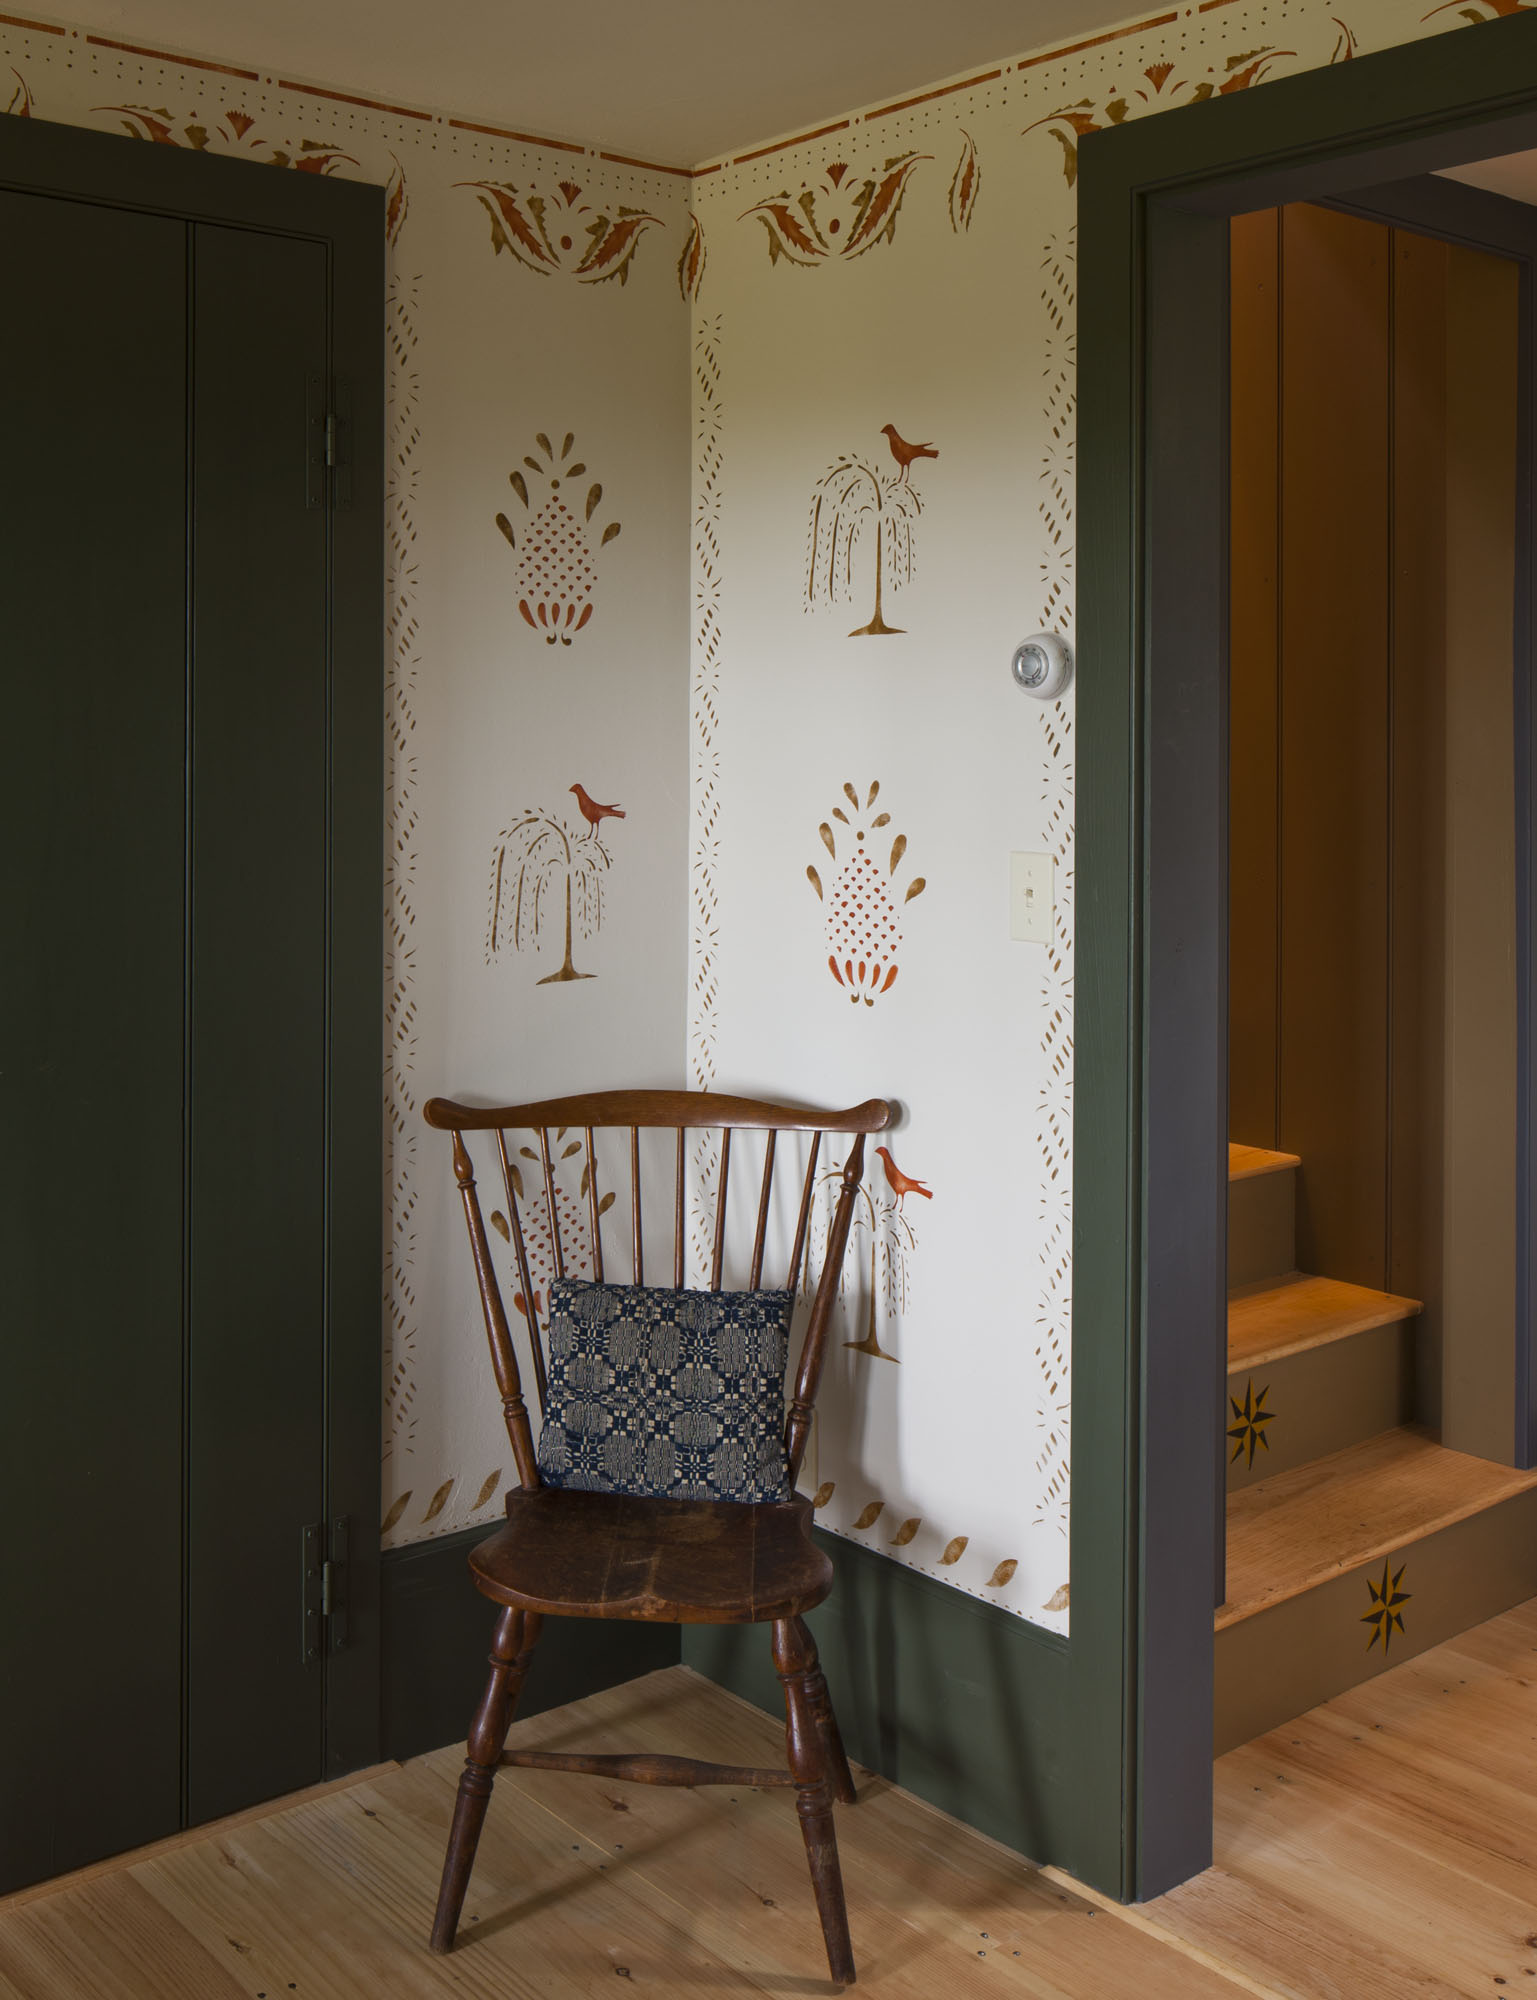 Contemporary patterns from the American Home Stencils historical collection include stylized wheat, a floral Scandinavian kurbits design, and thistles.